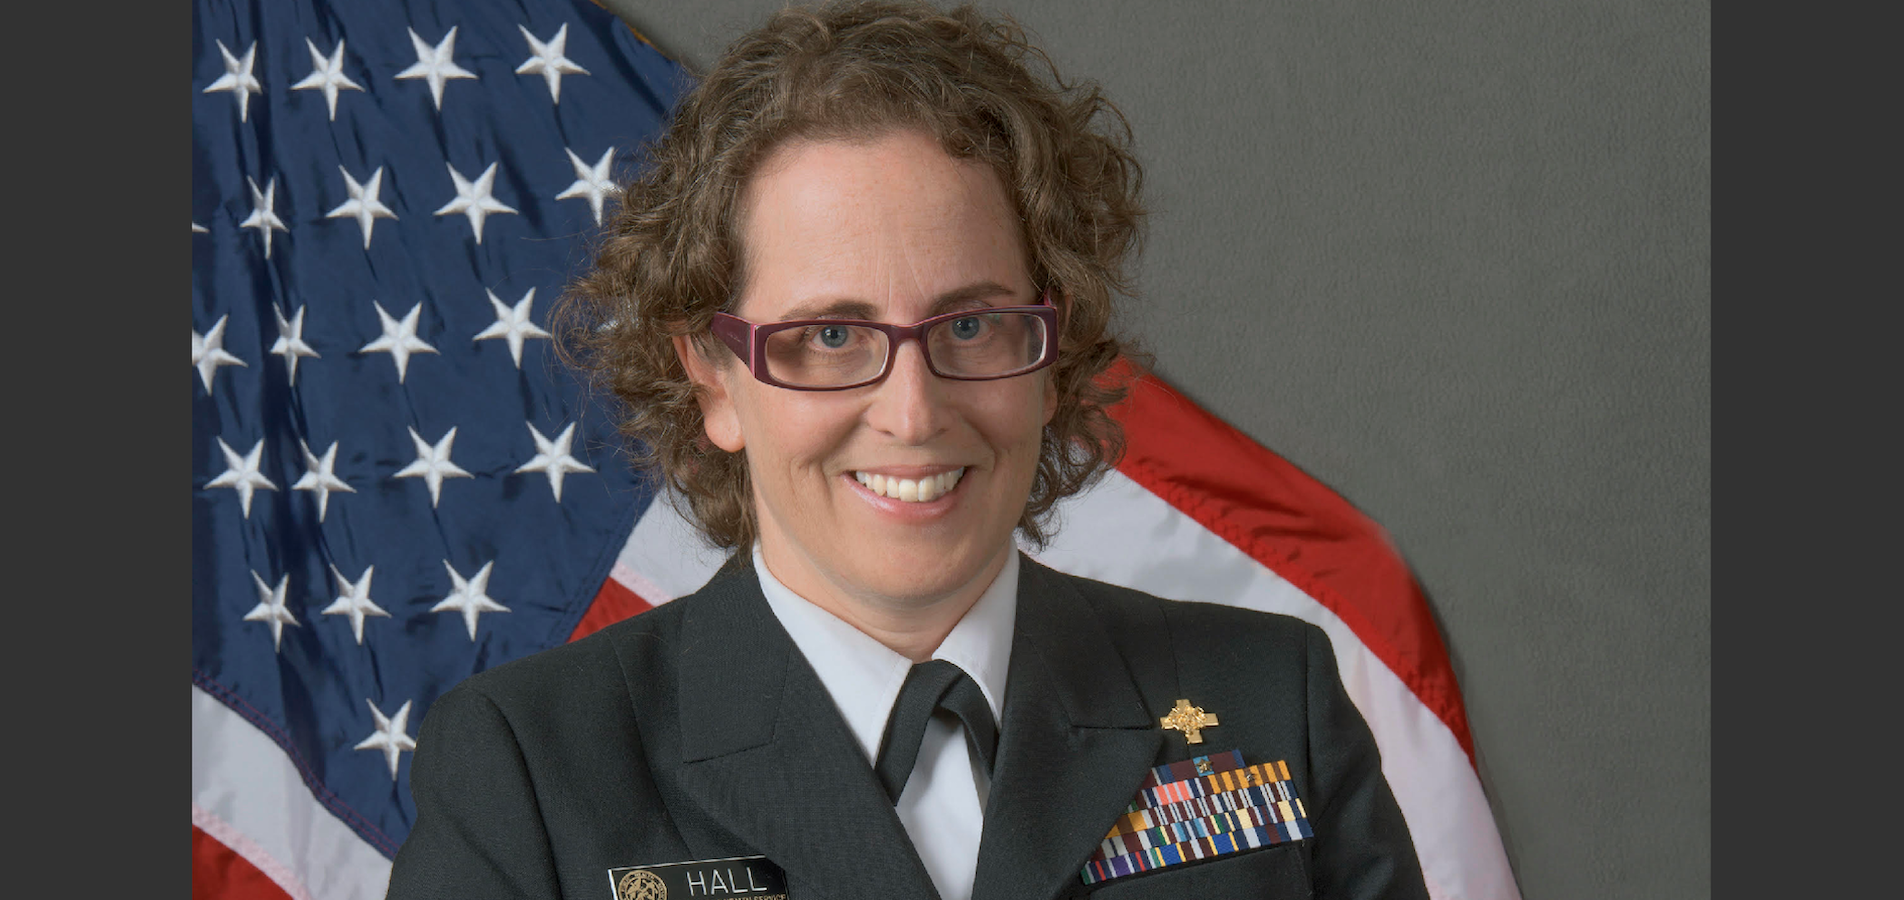 The Orthodox Jewish Female Active-Duty US Captain